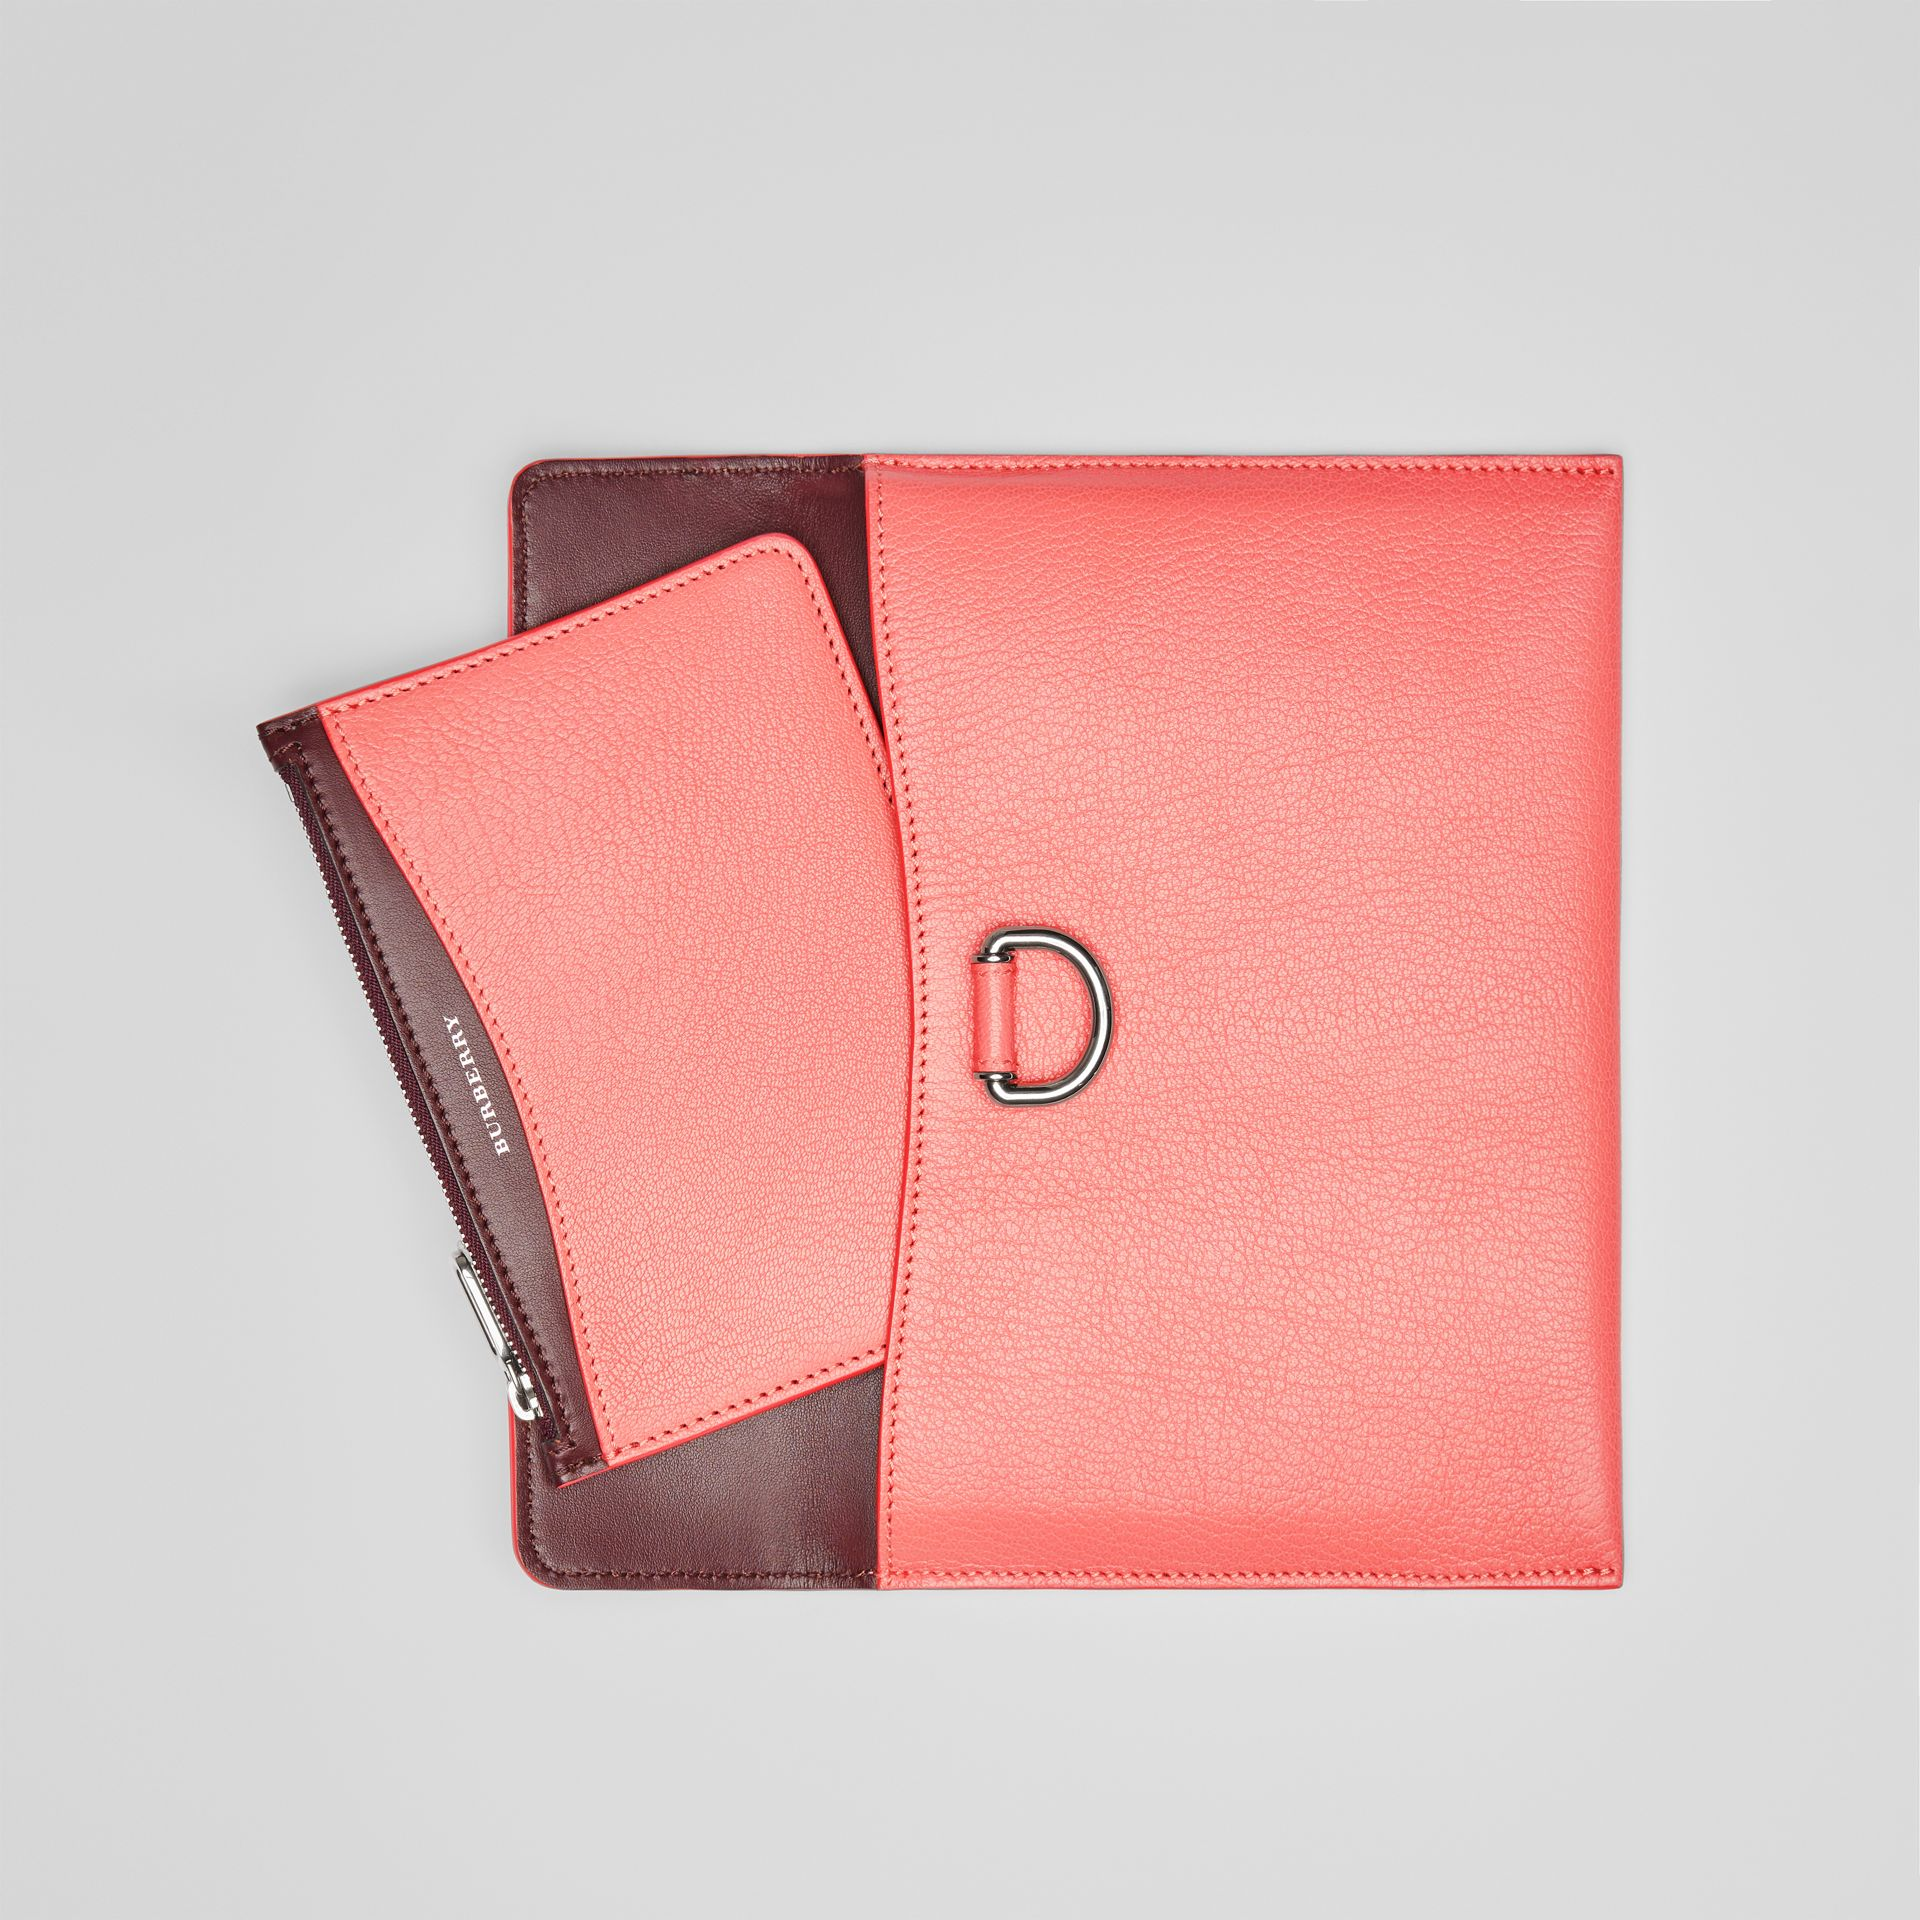 D-ring Leather Pouch with Zip Coin Case in Bright Coral Pink - Women | Burberry - gallery image 6